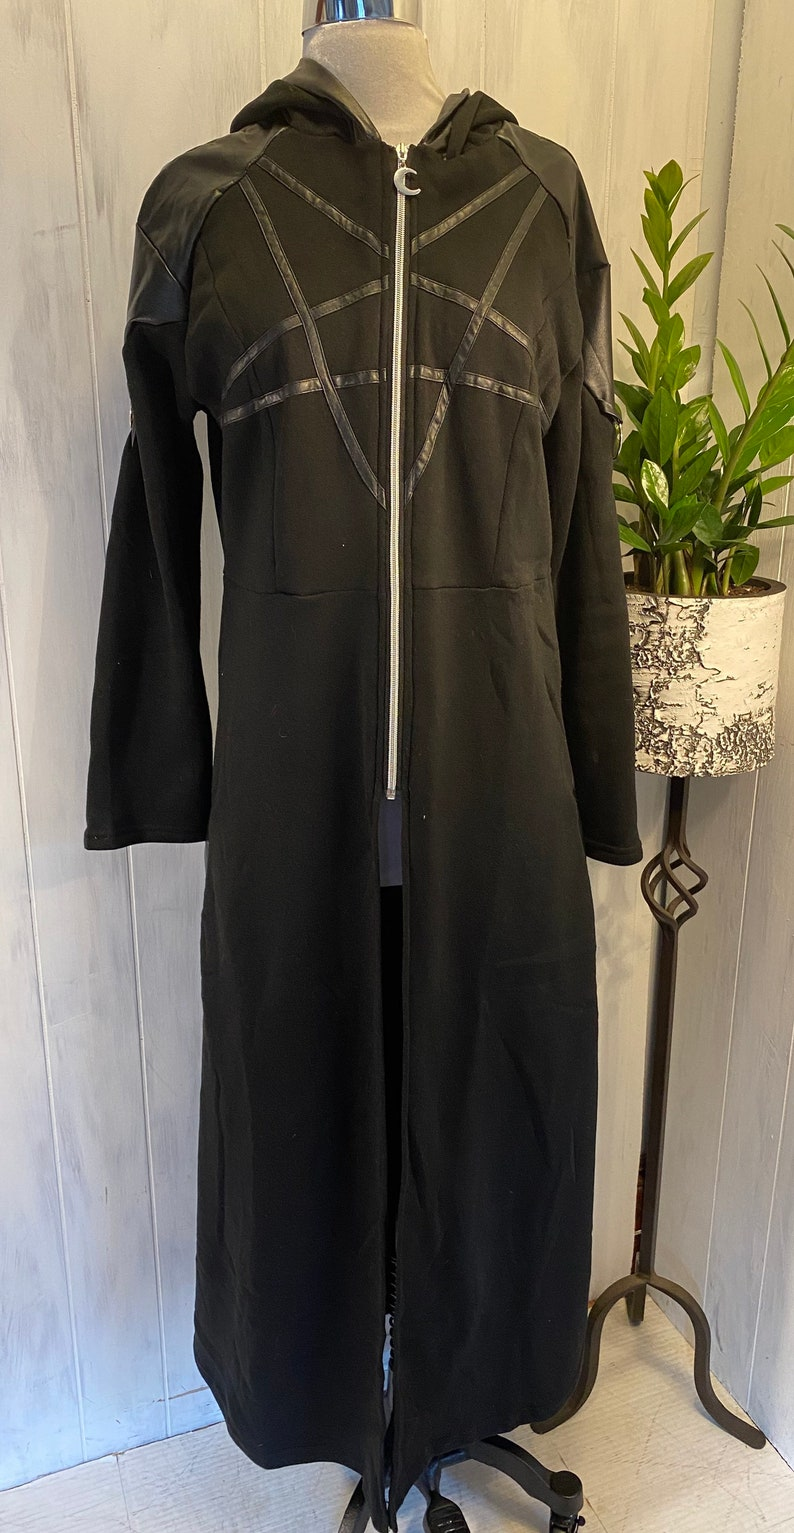 Cosplay Goth Steampunk Pentagon Hooded Long Robe W O-Rings /& PU Leather Brand New Without Tags